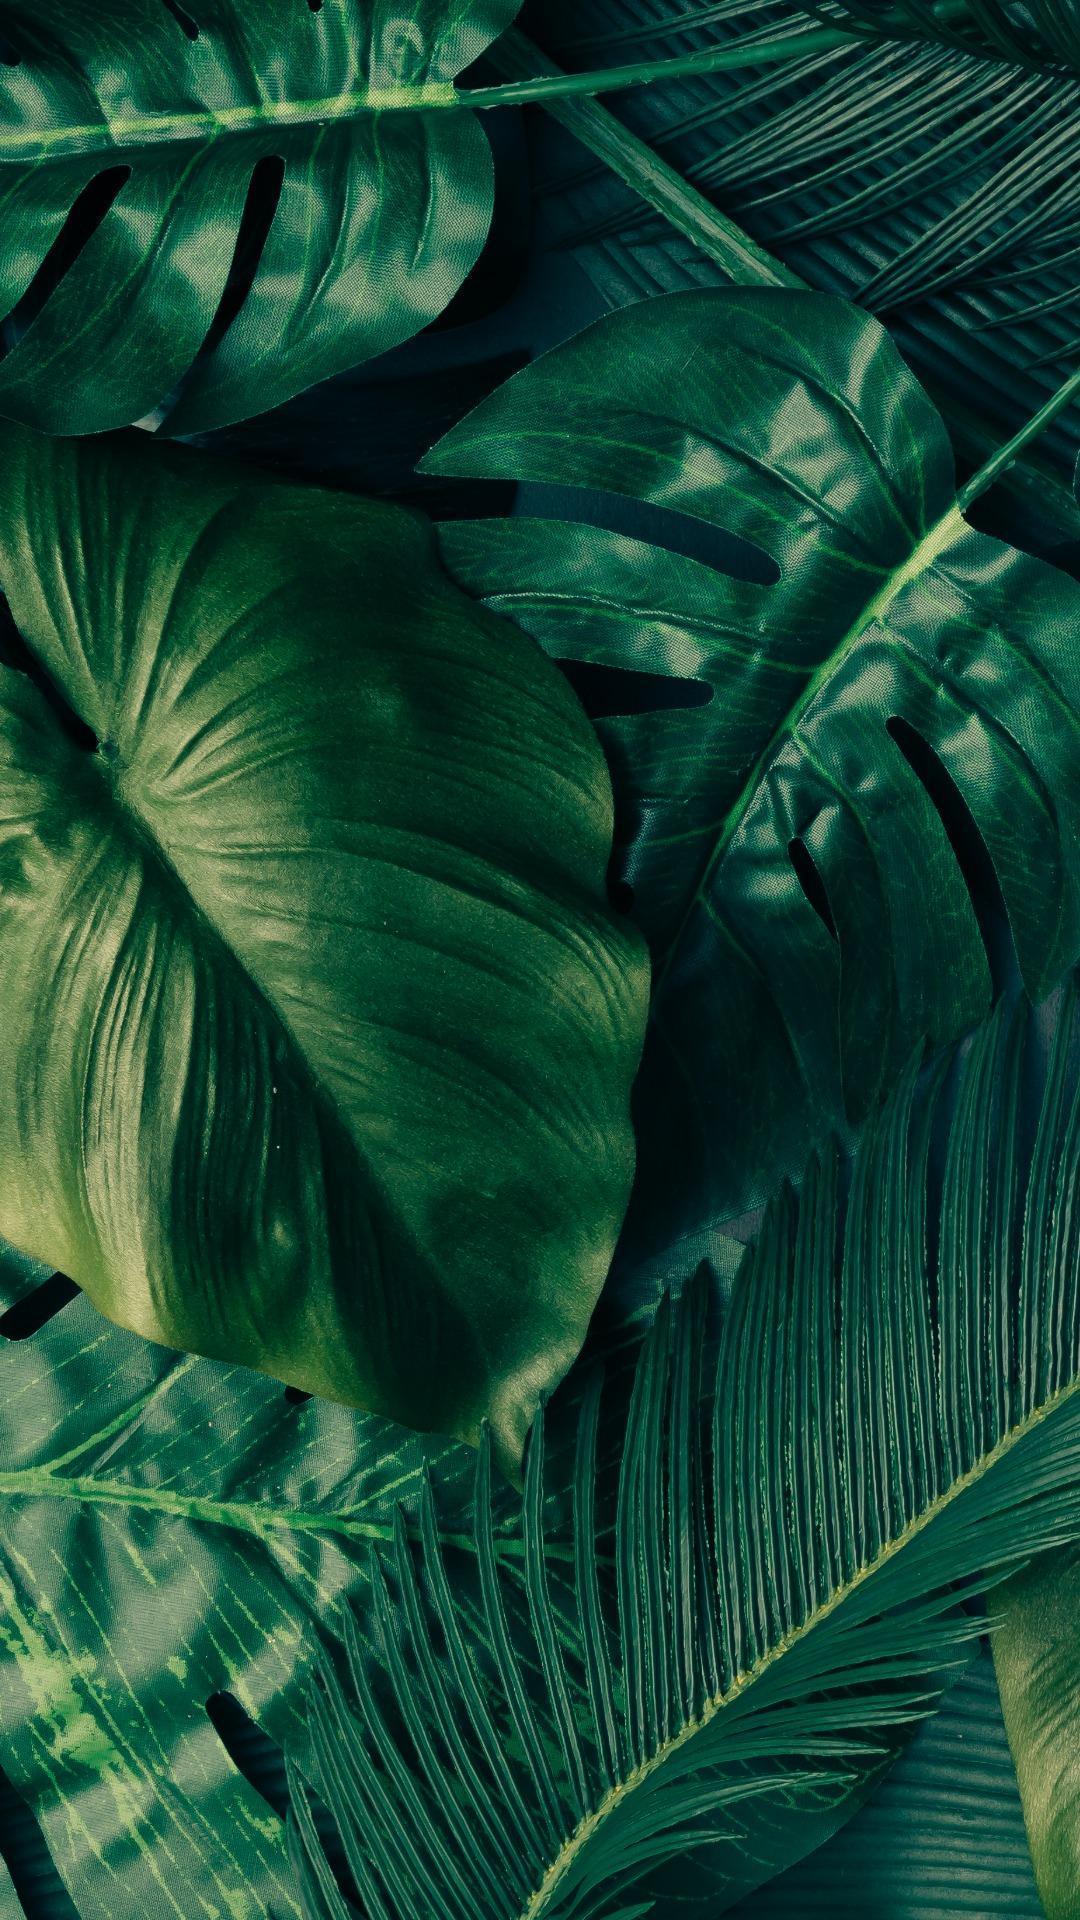 Tropical Leaves Iphone Wallpapers Top Free Tropical Leaves Iphone Backgrounds Wallpaperaccess Here you can find the best tropical pictures wallpapers uploaded by our community. tropical leaves iphone wallpapers top